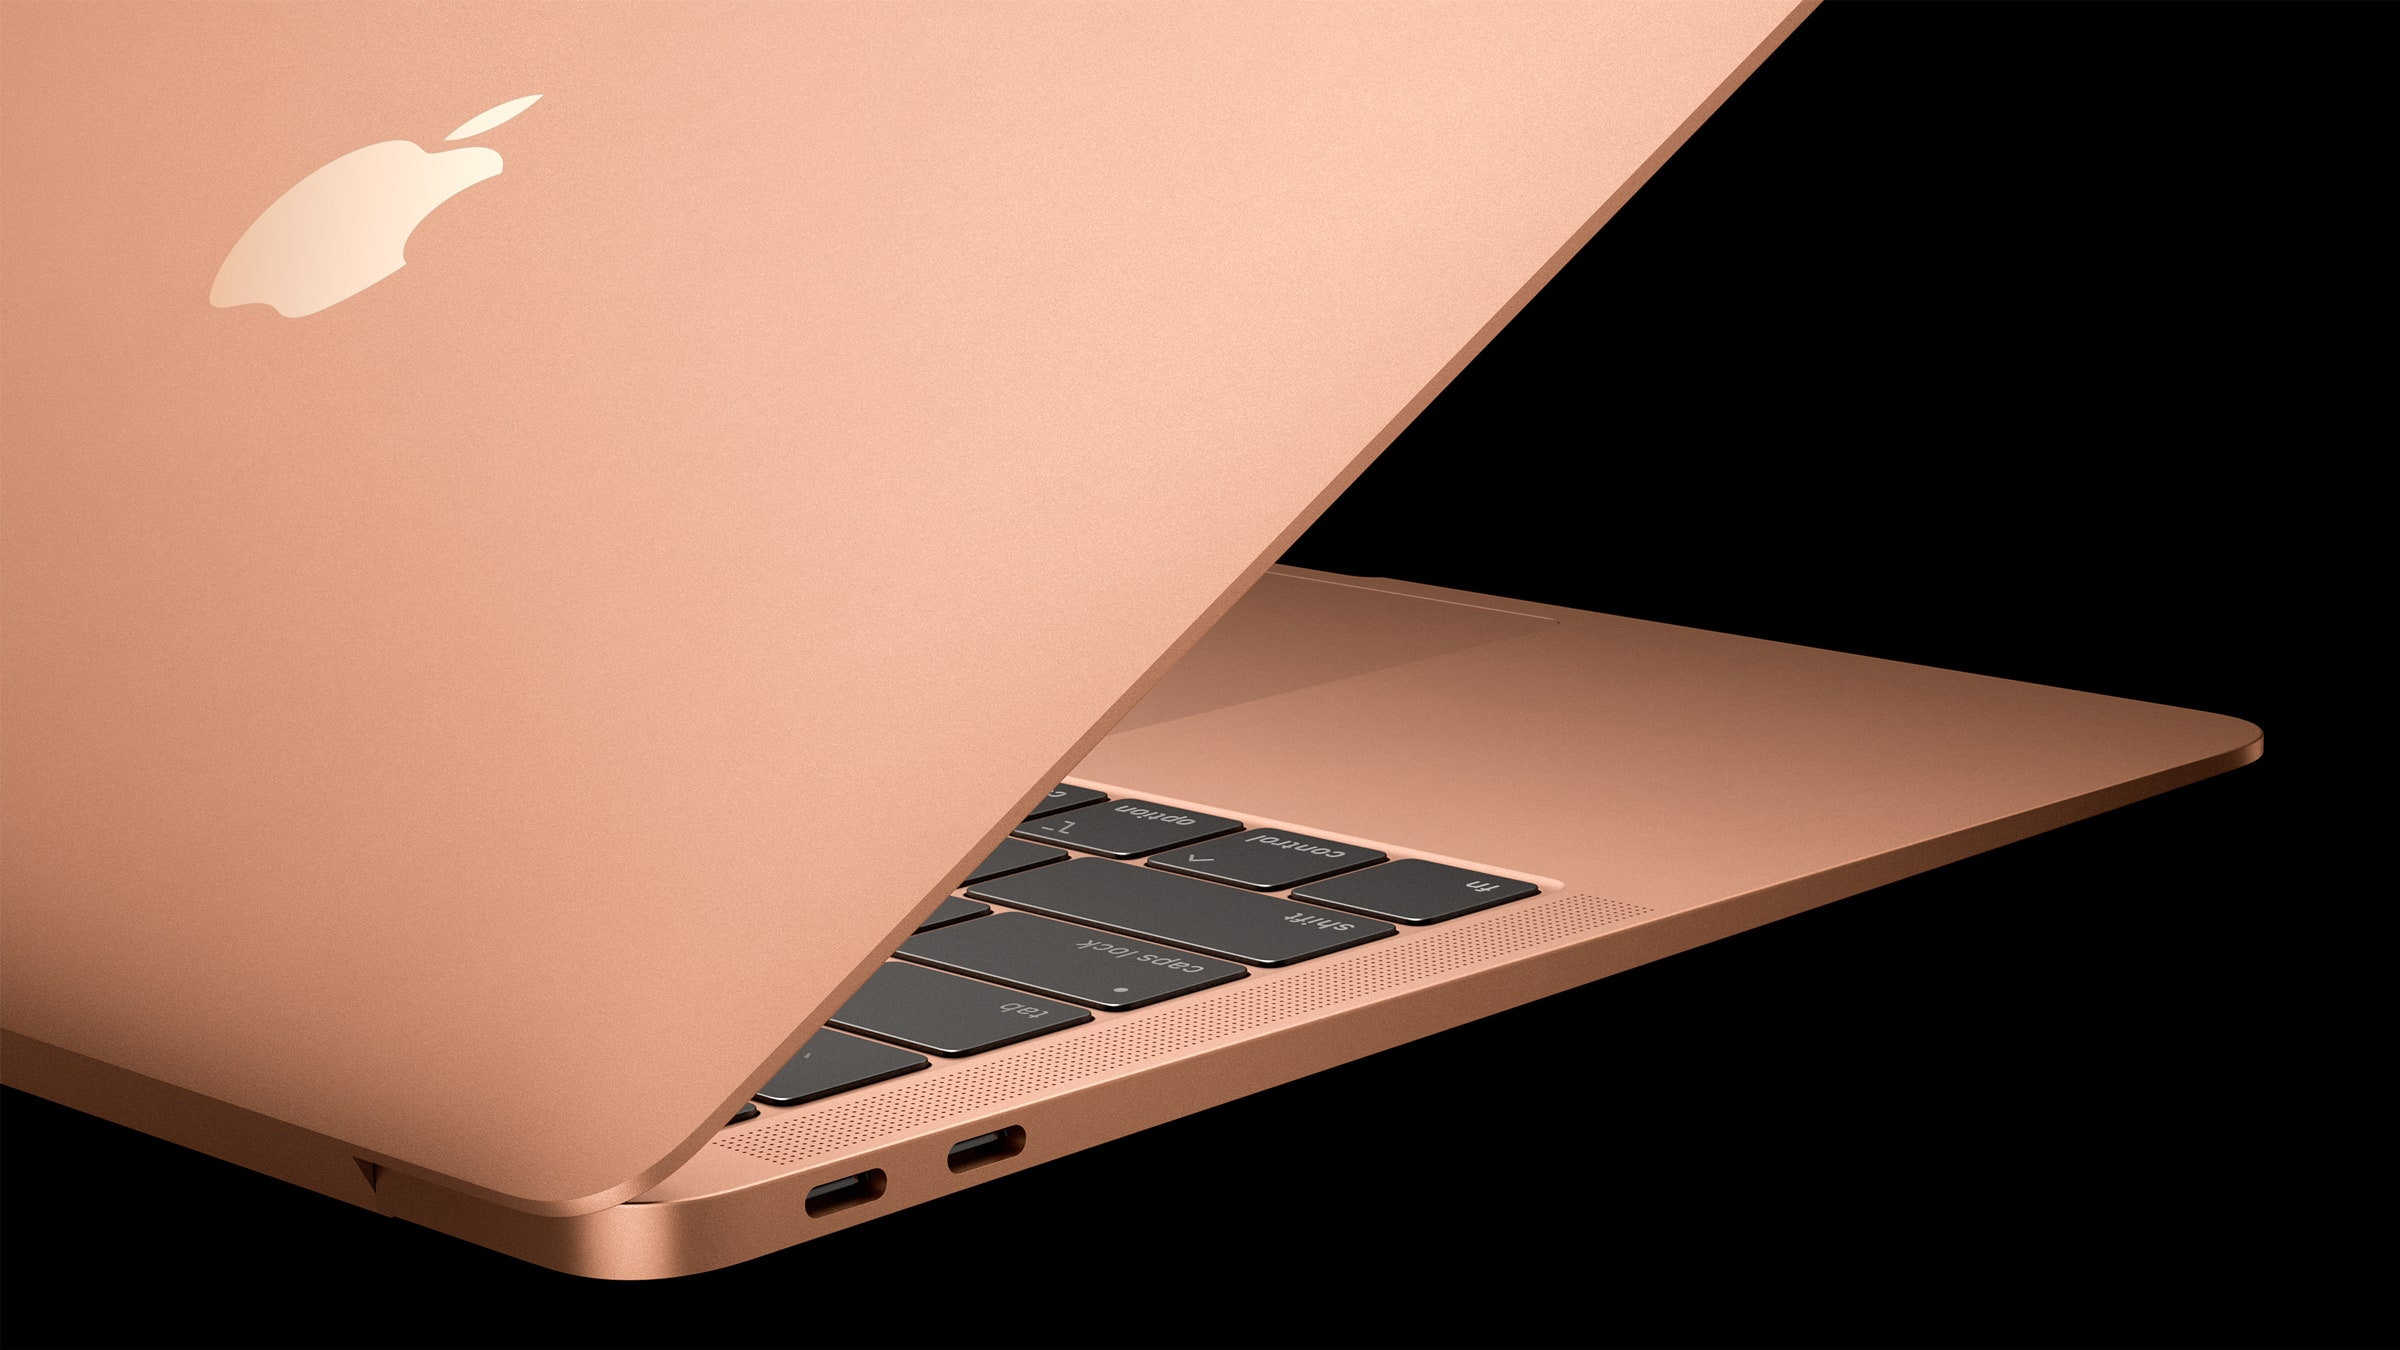 Apple Fans can Expect Two MacBooks in 2021 with Mini LED Screen